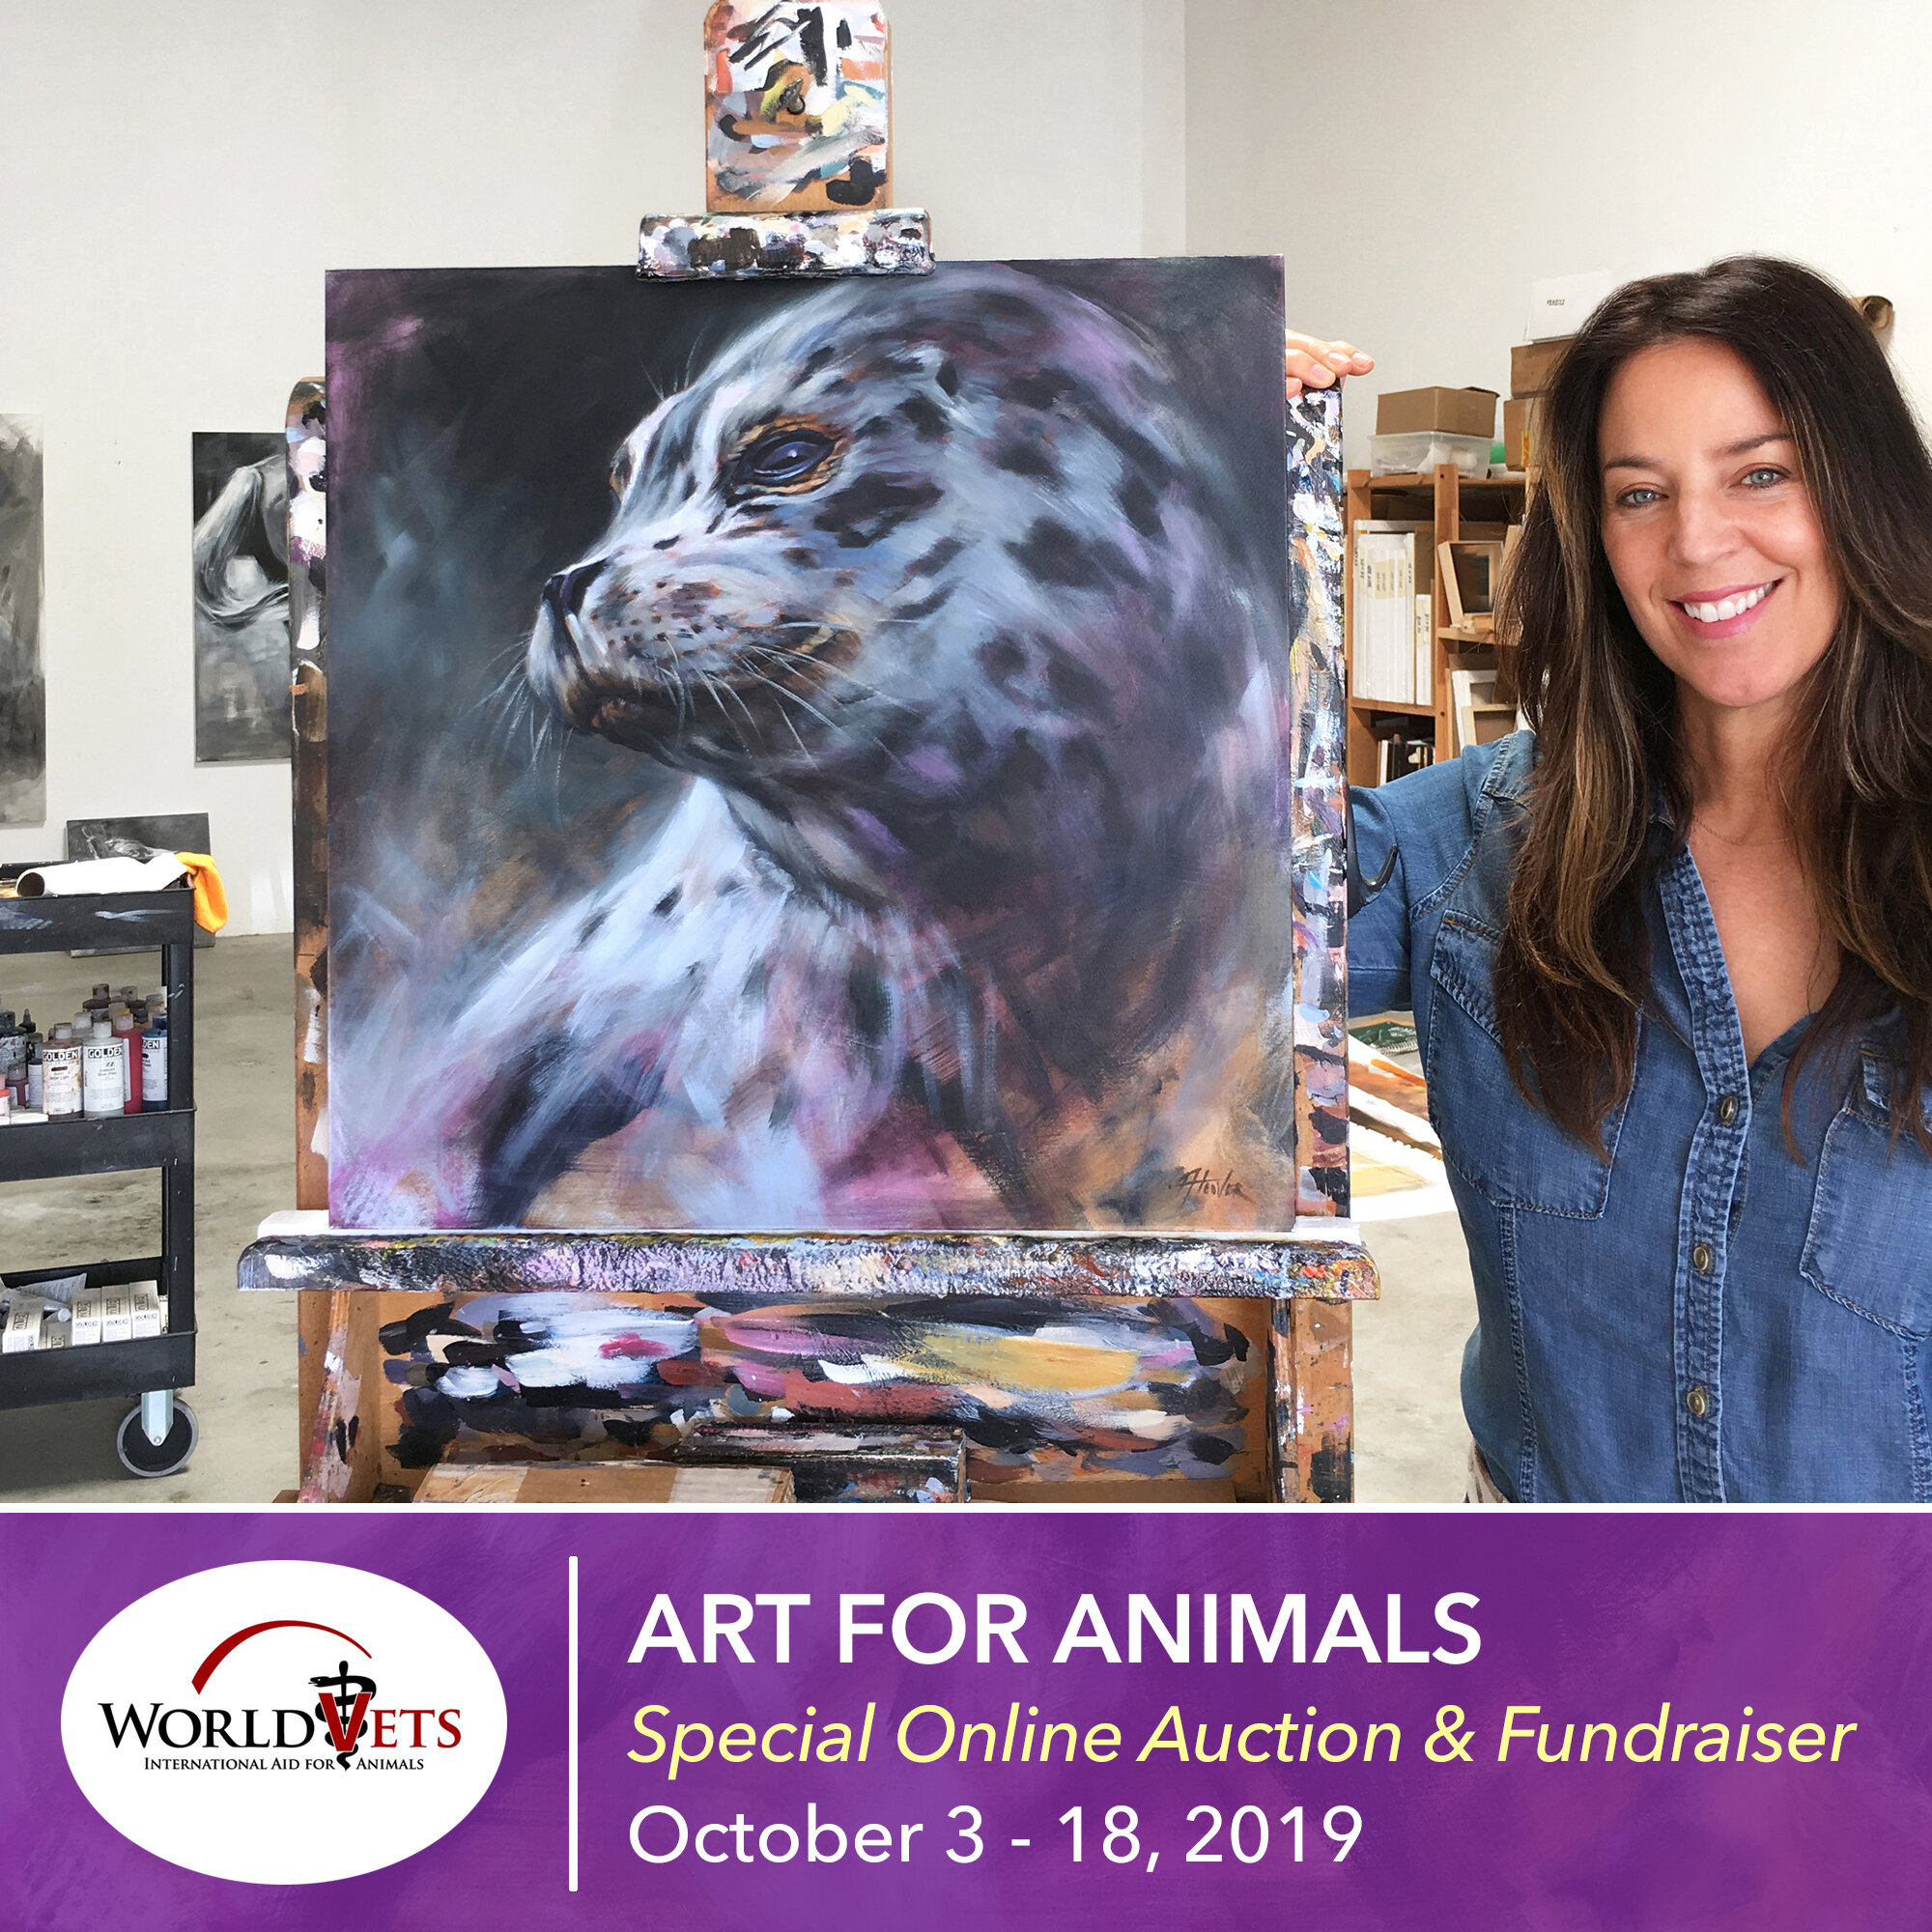 """ART FOR ANIMALS AUCTION - """"Harbor Seal"""" charity auction. 100% of the proceeds benefit worldvets.org. Auction ends 10/18/19!2019worldvets.org/artforanimals"""